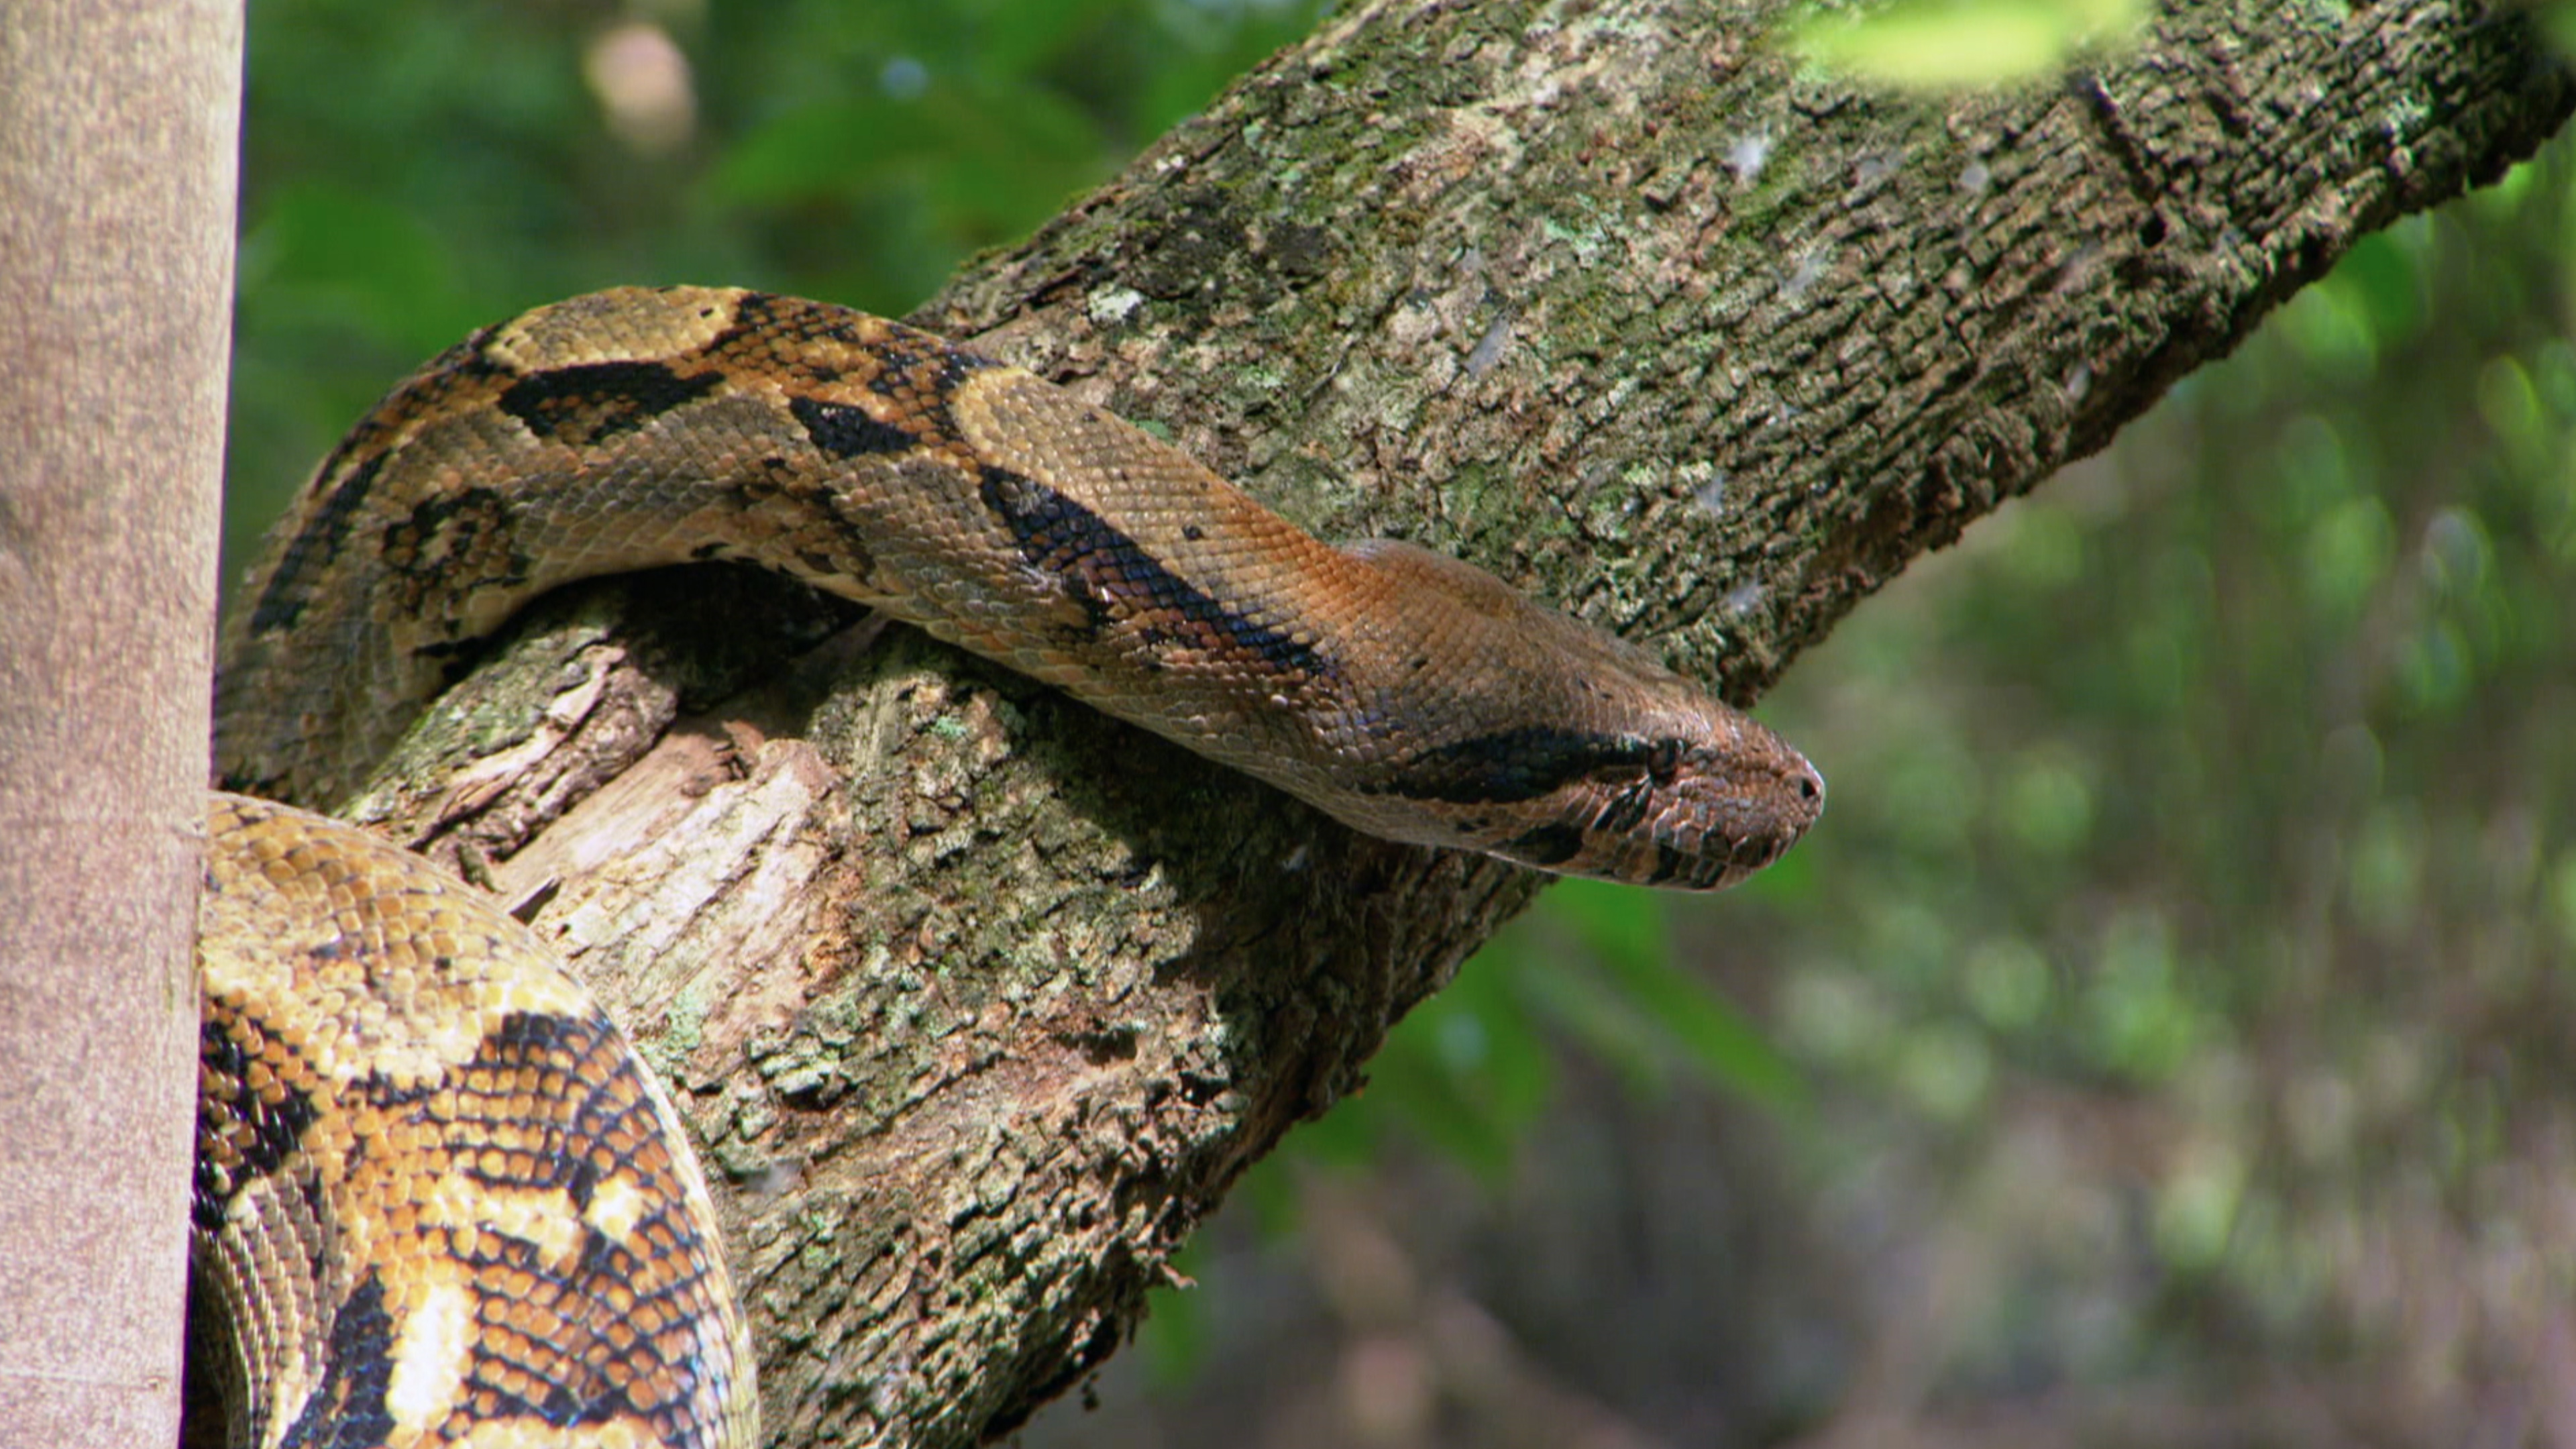 Red Tail Boa (Boa constrictor)